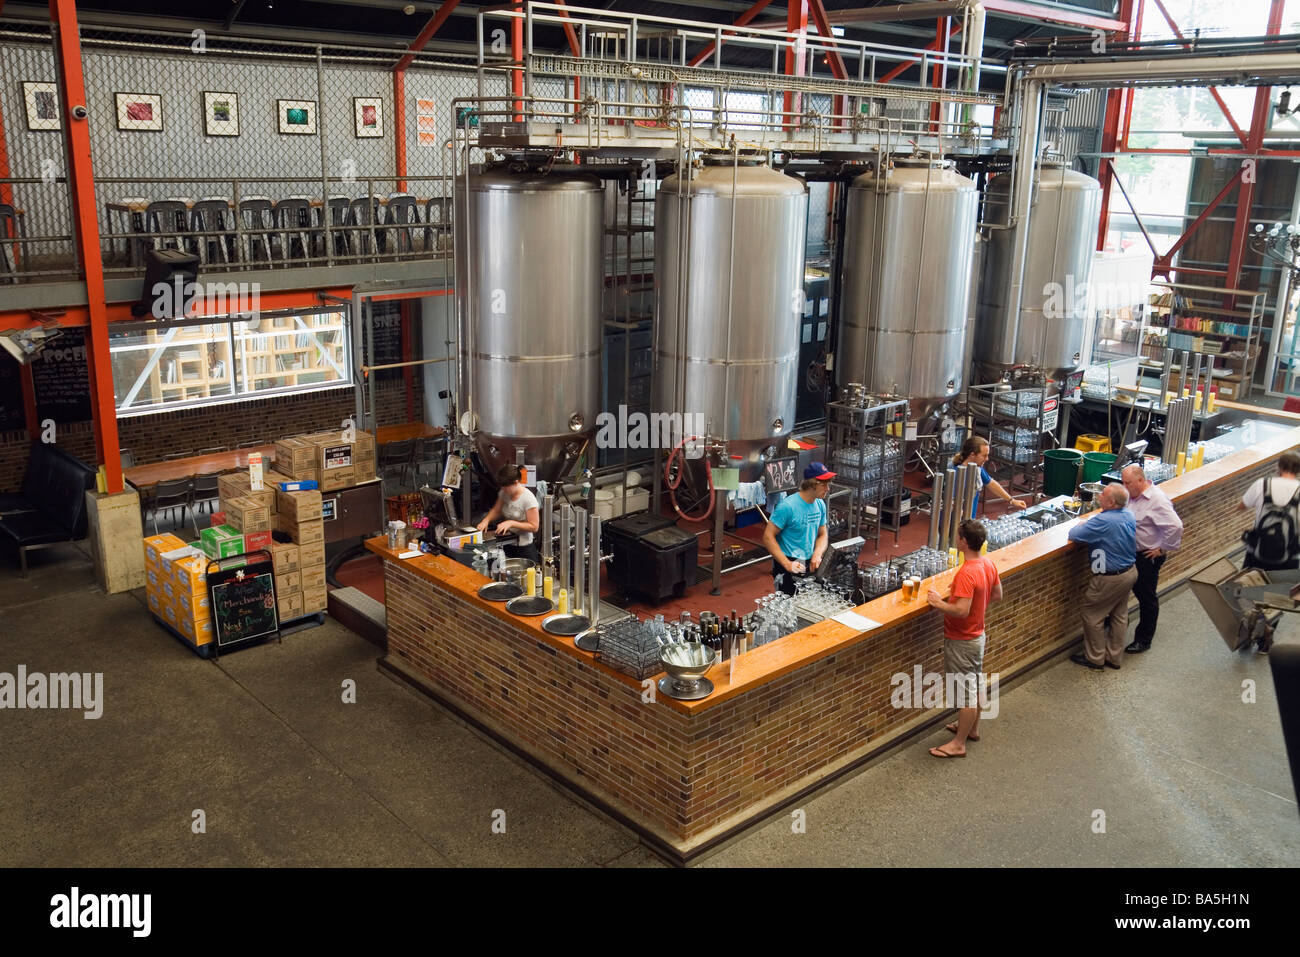 Little Creatures Brewery, renowned for its home brewed ales.  Fremantle, Western Australia, AUSTRALIA - Stock Image